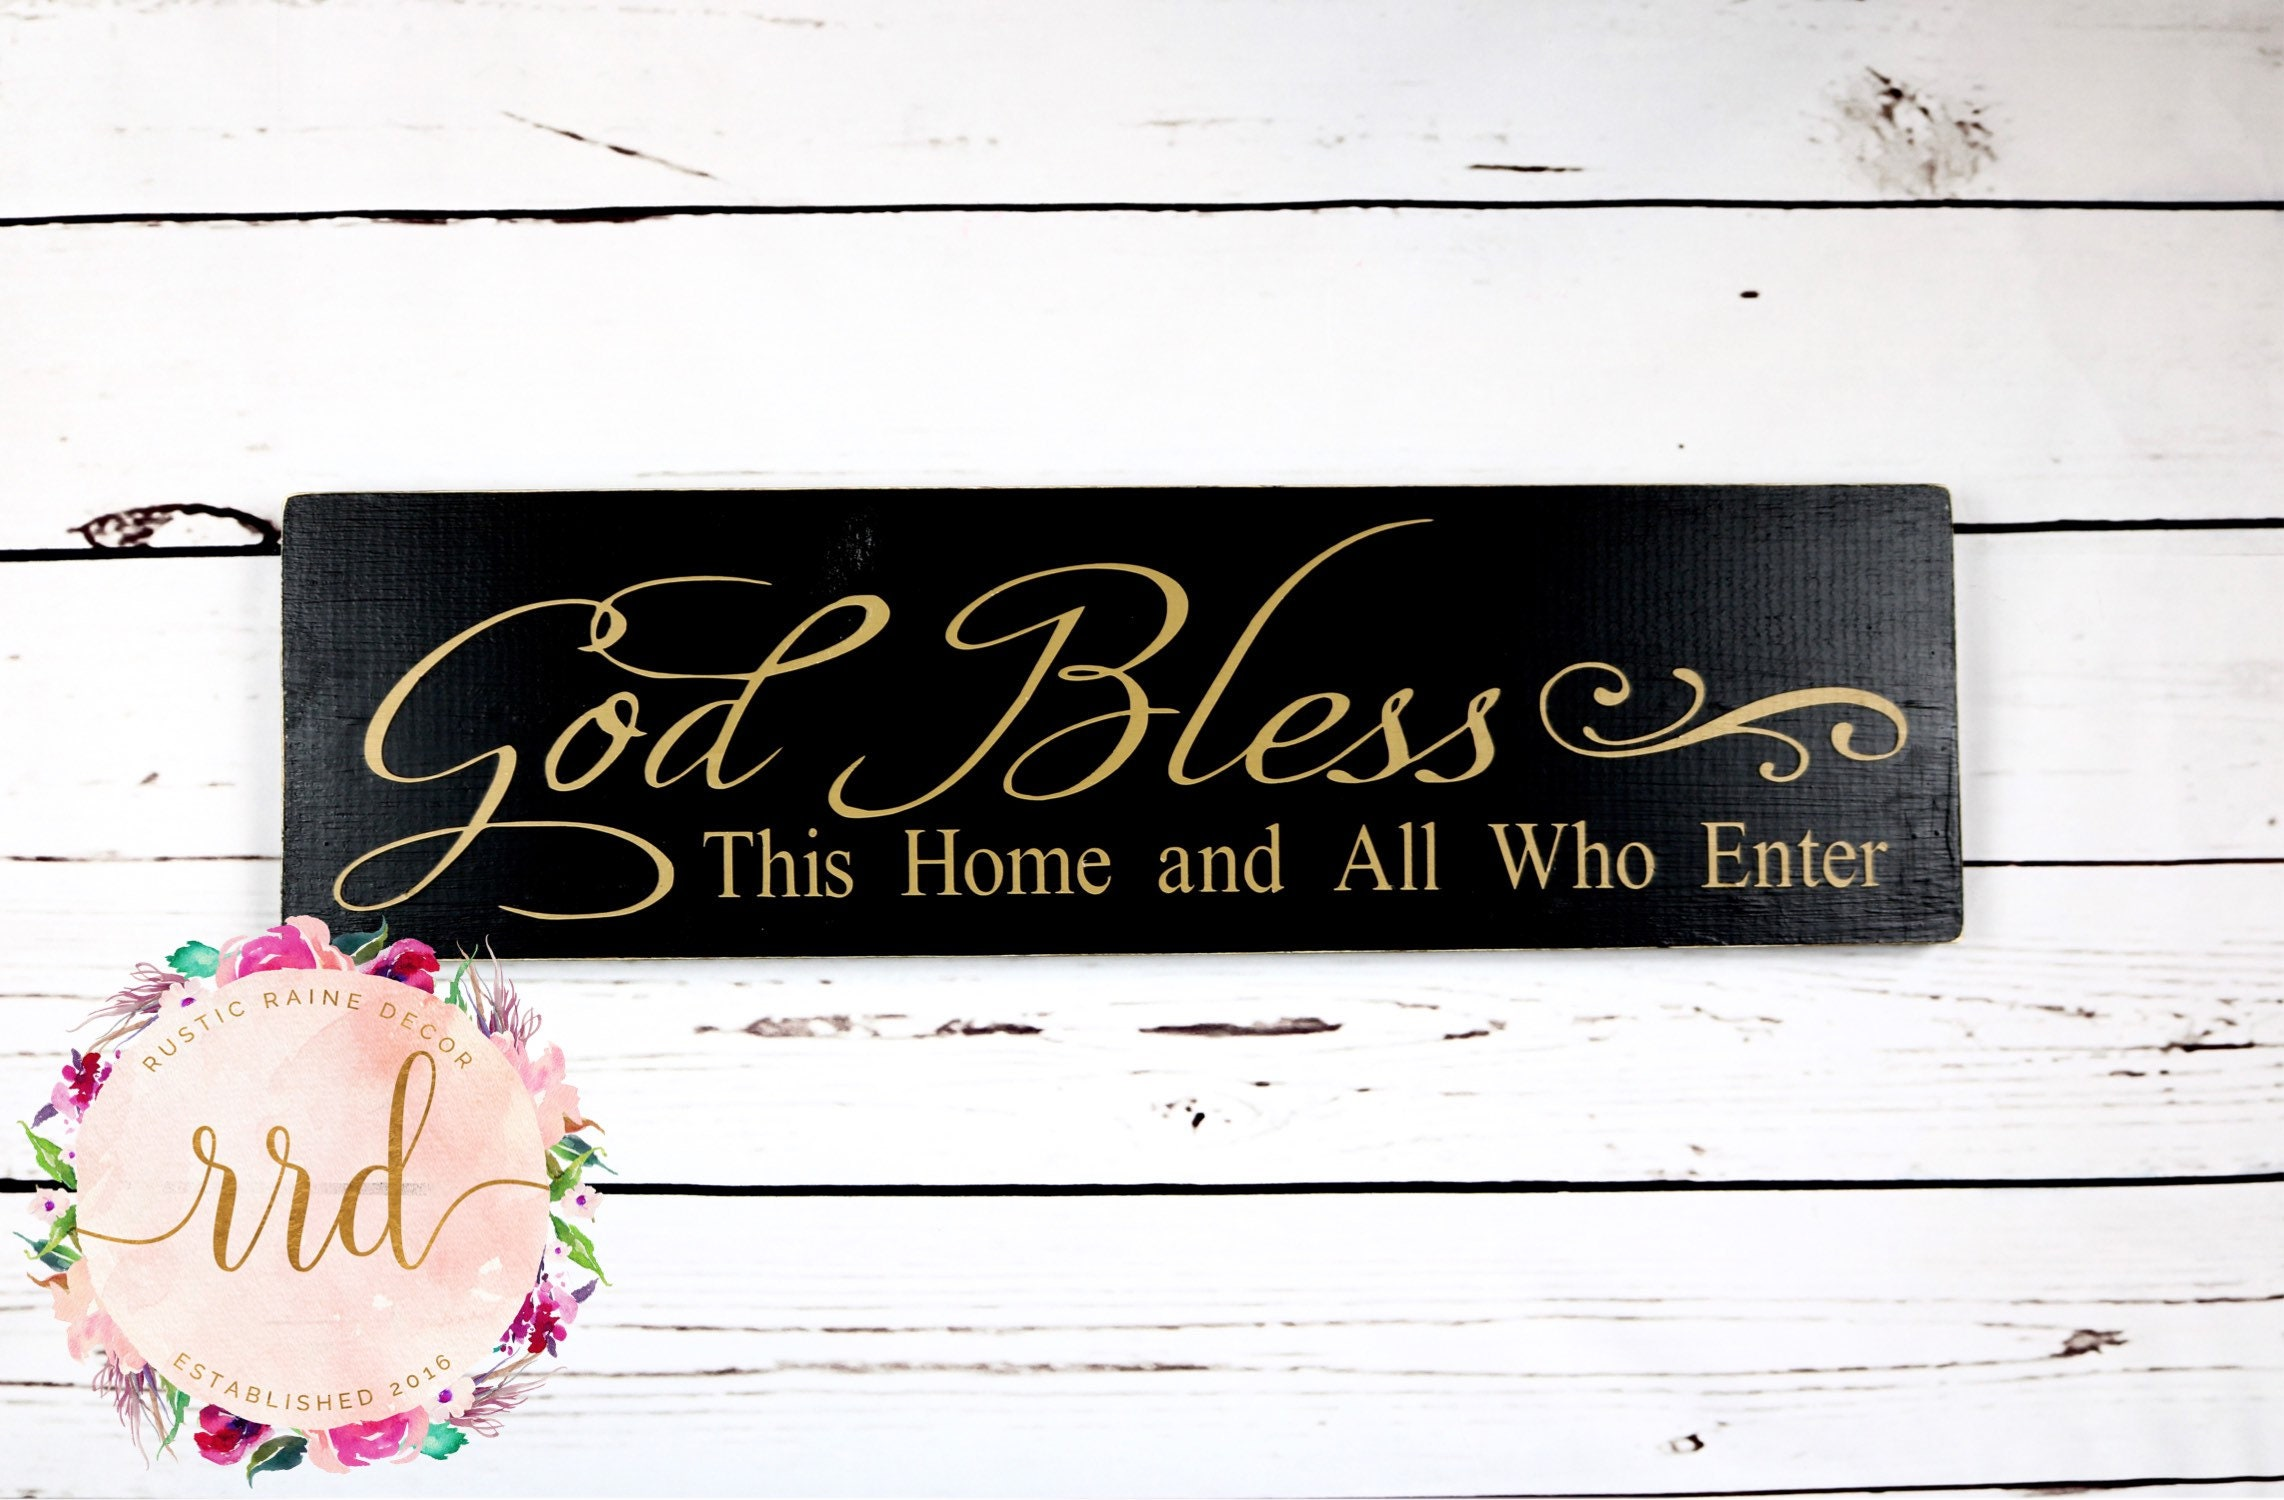 God Bless This Home and All Who Enter Hand Painted Unframed